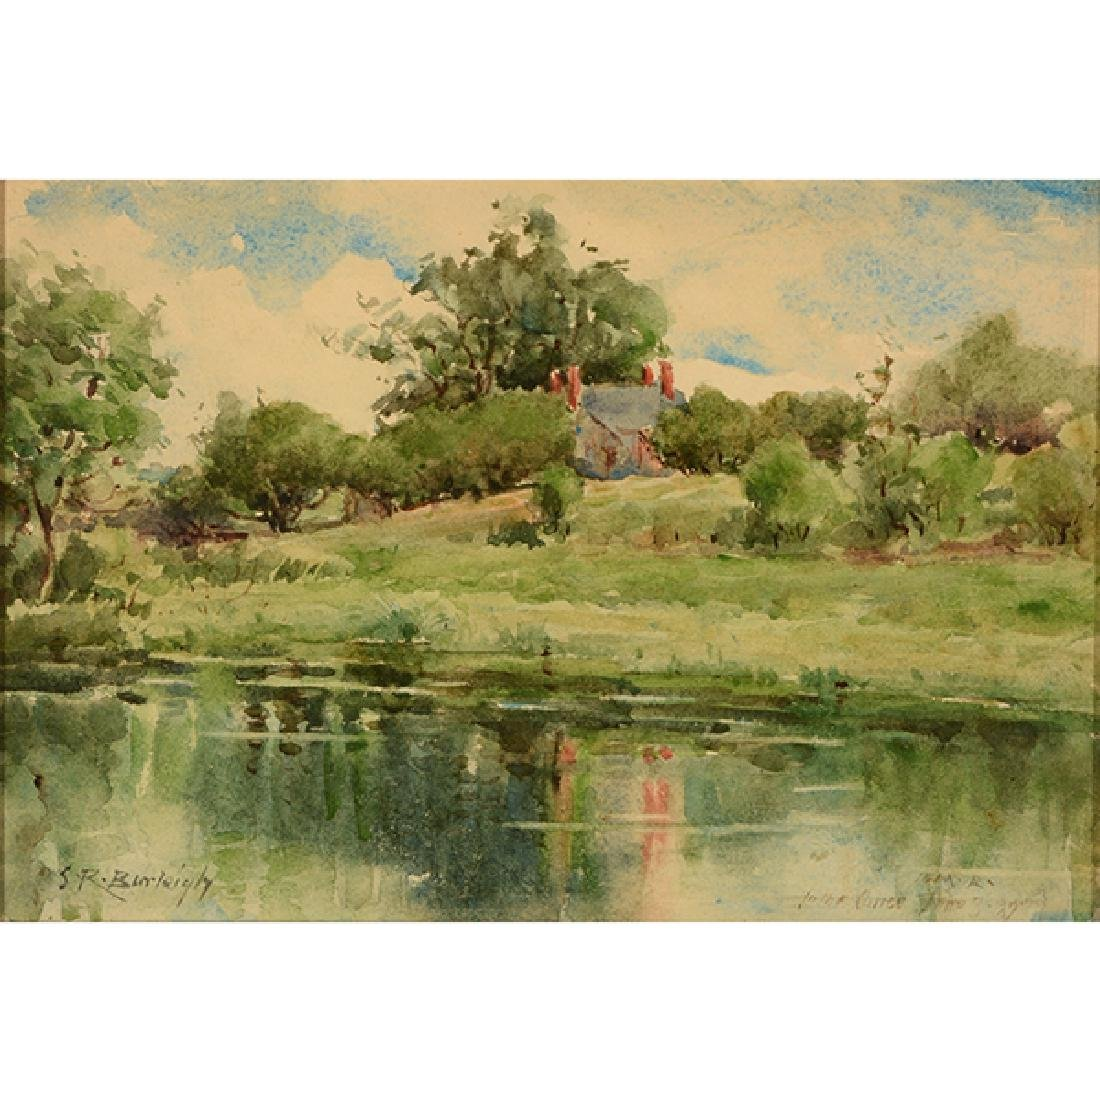 "Sydney Burleigh ""English Countryside"" watercolor"